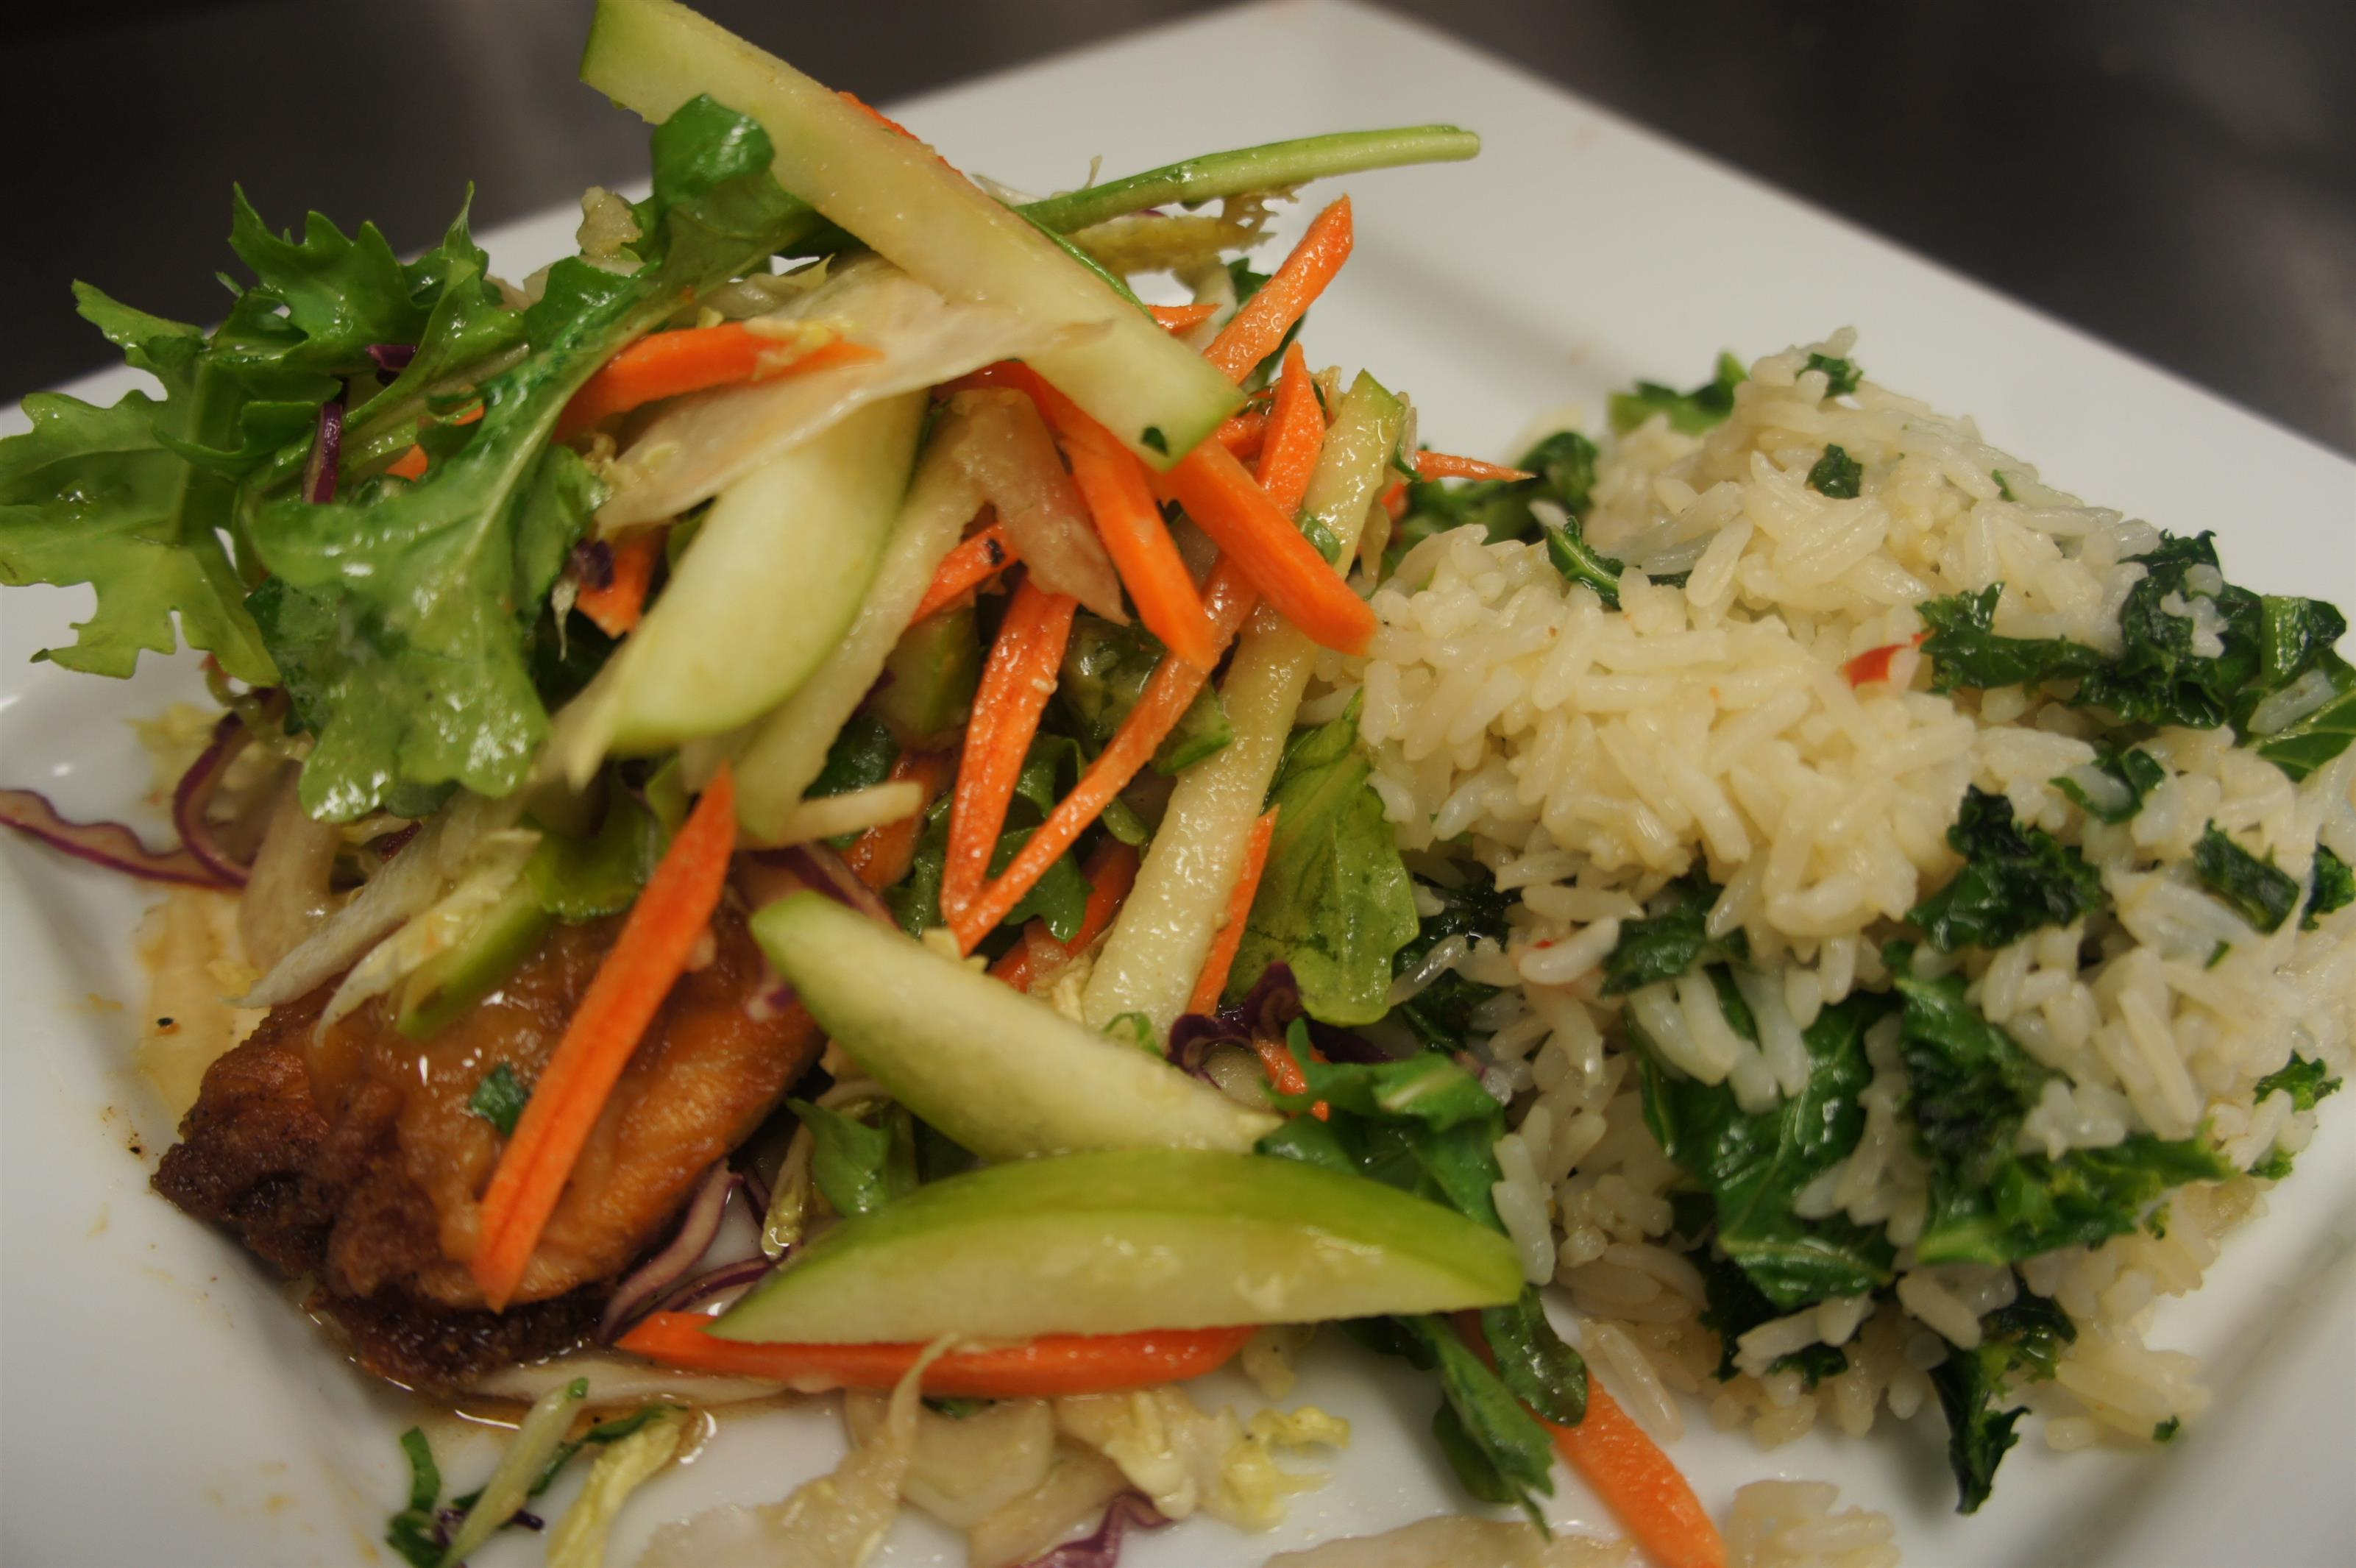 Meat dish topped with sauteed vegetables and green salad served with rice